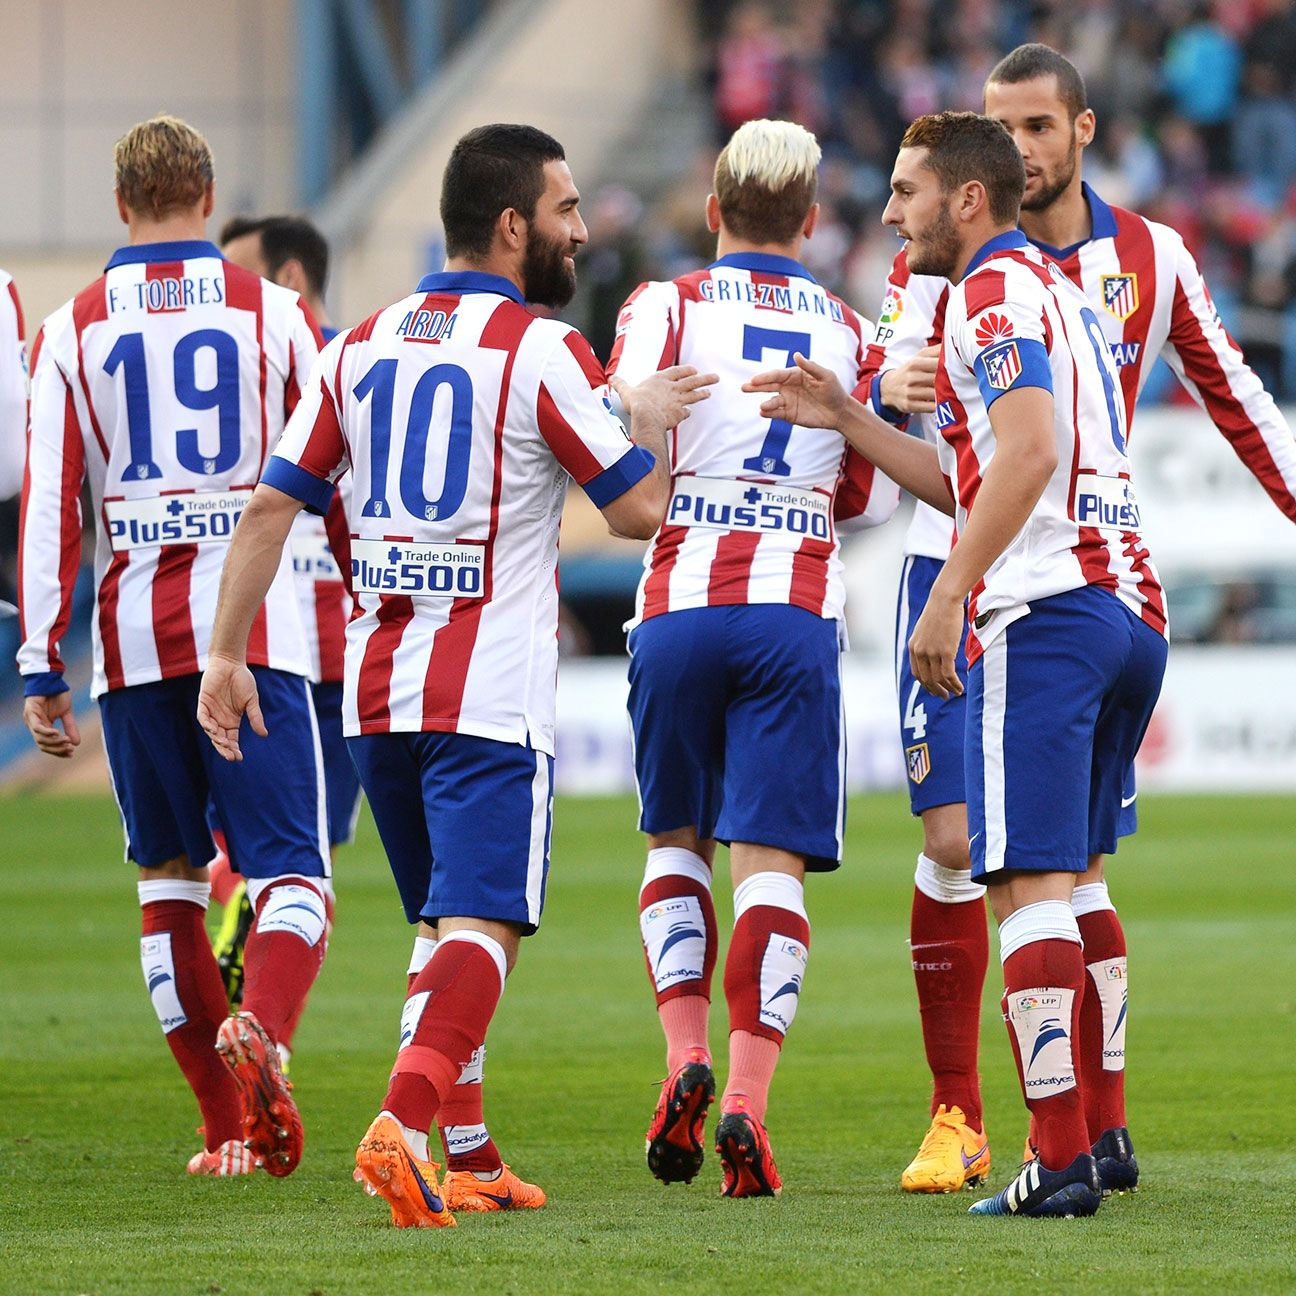 Arda Turan and Koke proved a lethal combo on the day for Atletico.